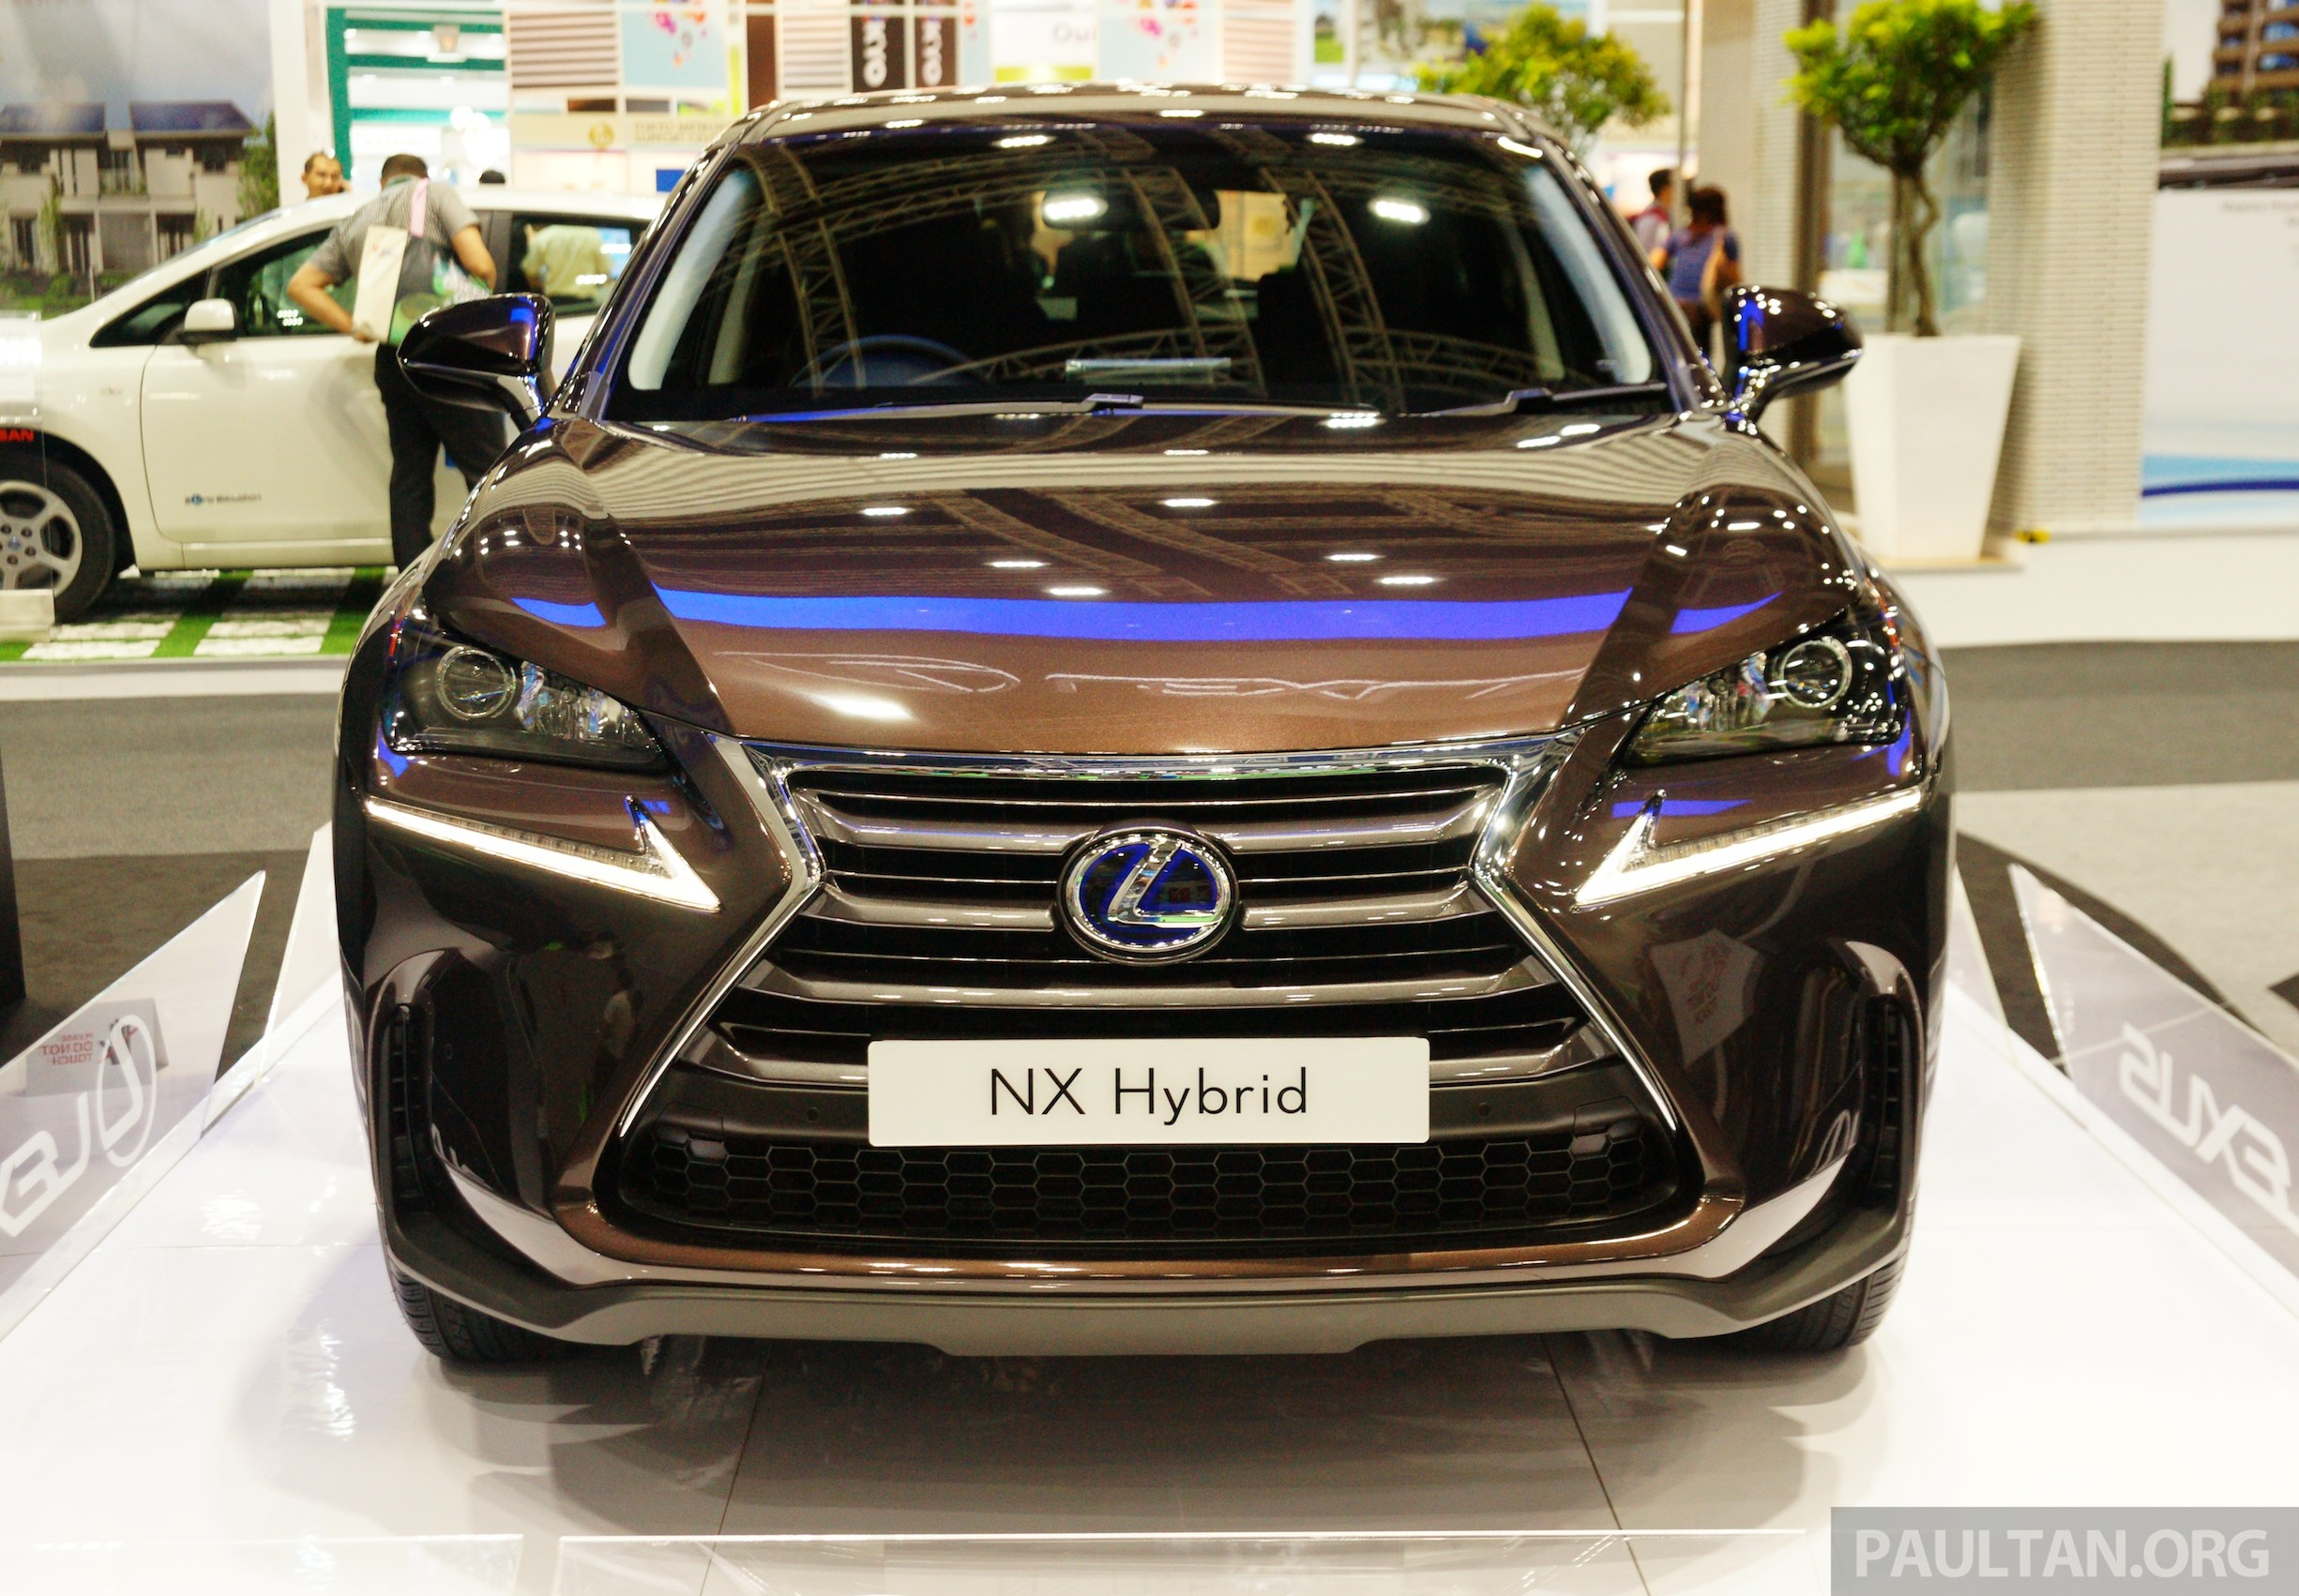 lexus nx 300h on display at igem 2014 in klcc. Black Bedroom Furniture Sets. Home Design Ideas